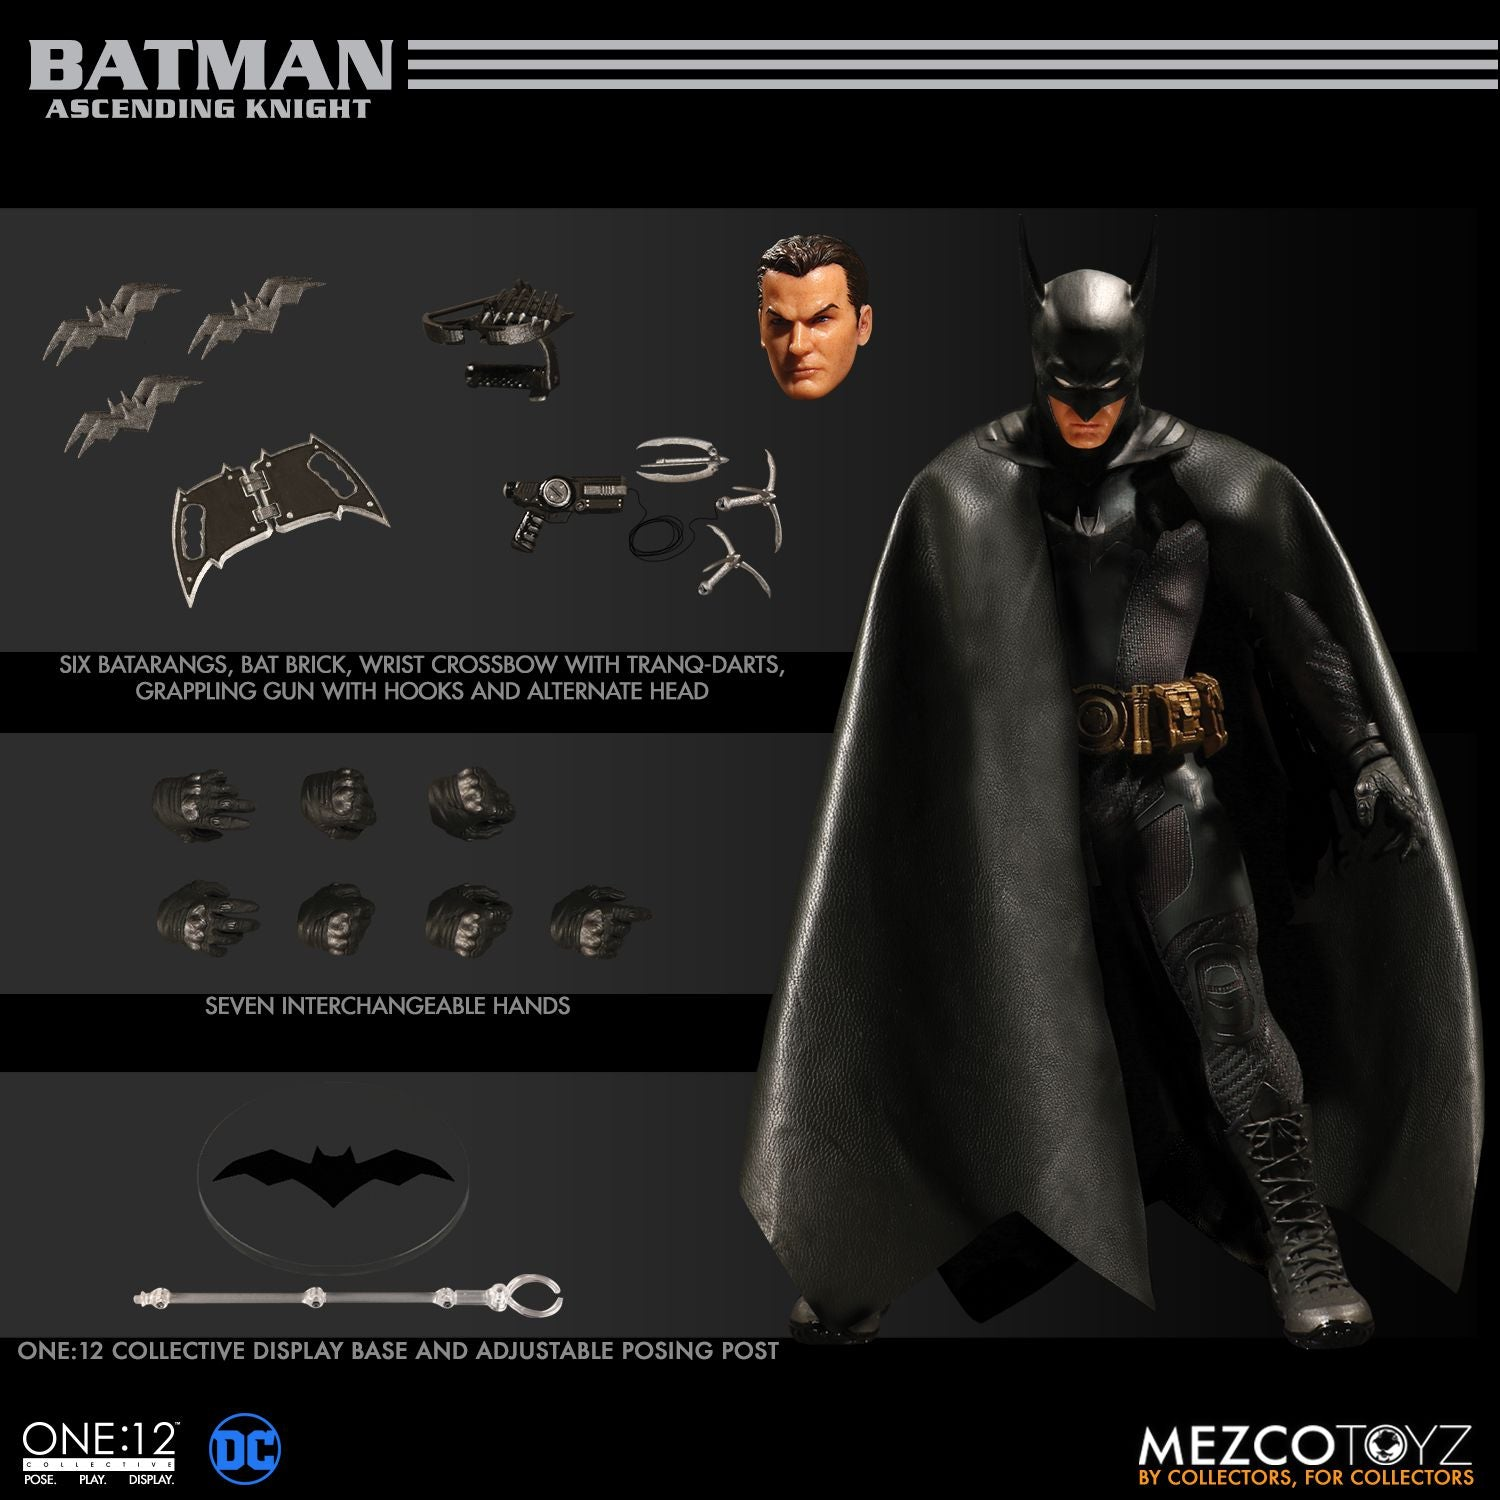 Mezco - One:12 Collective - Batman: Ascending Knight